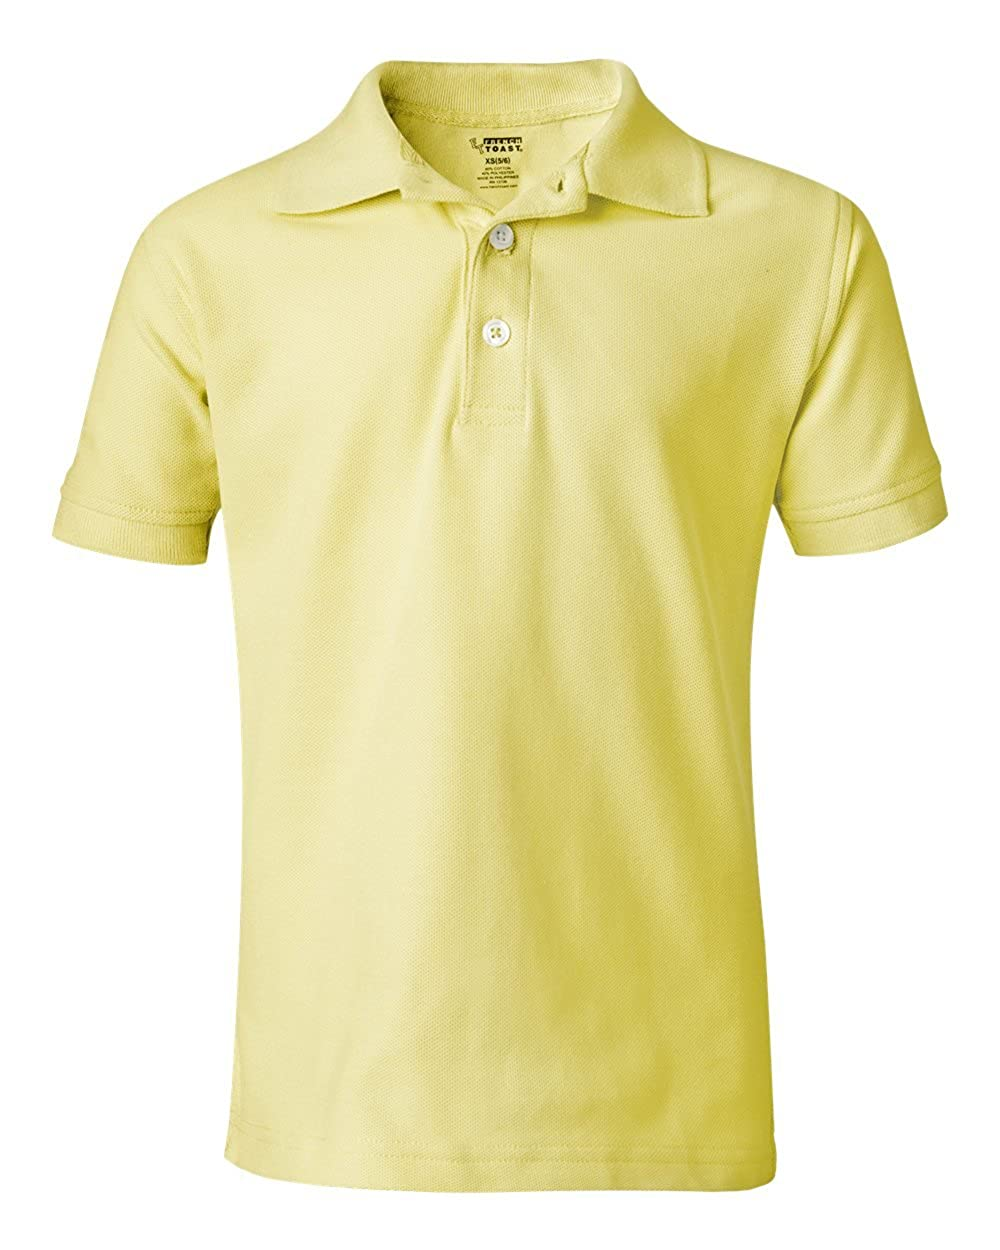 French Toast School Uniform Boys Short Sleeve Pique Polo Shirt, Yellow, X-Large (14/16) A9084